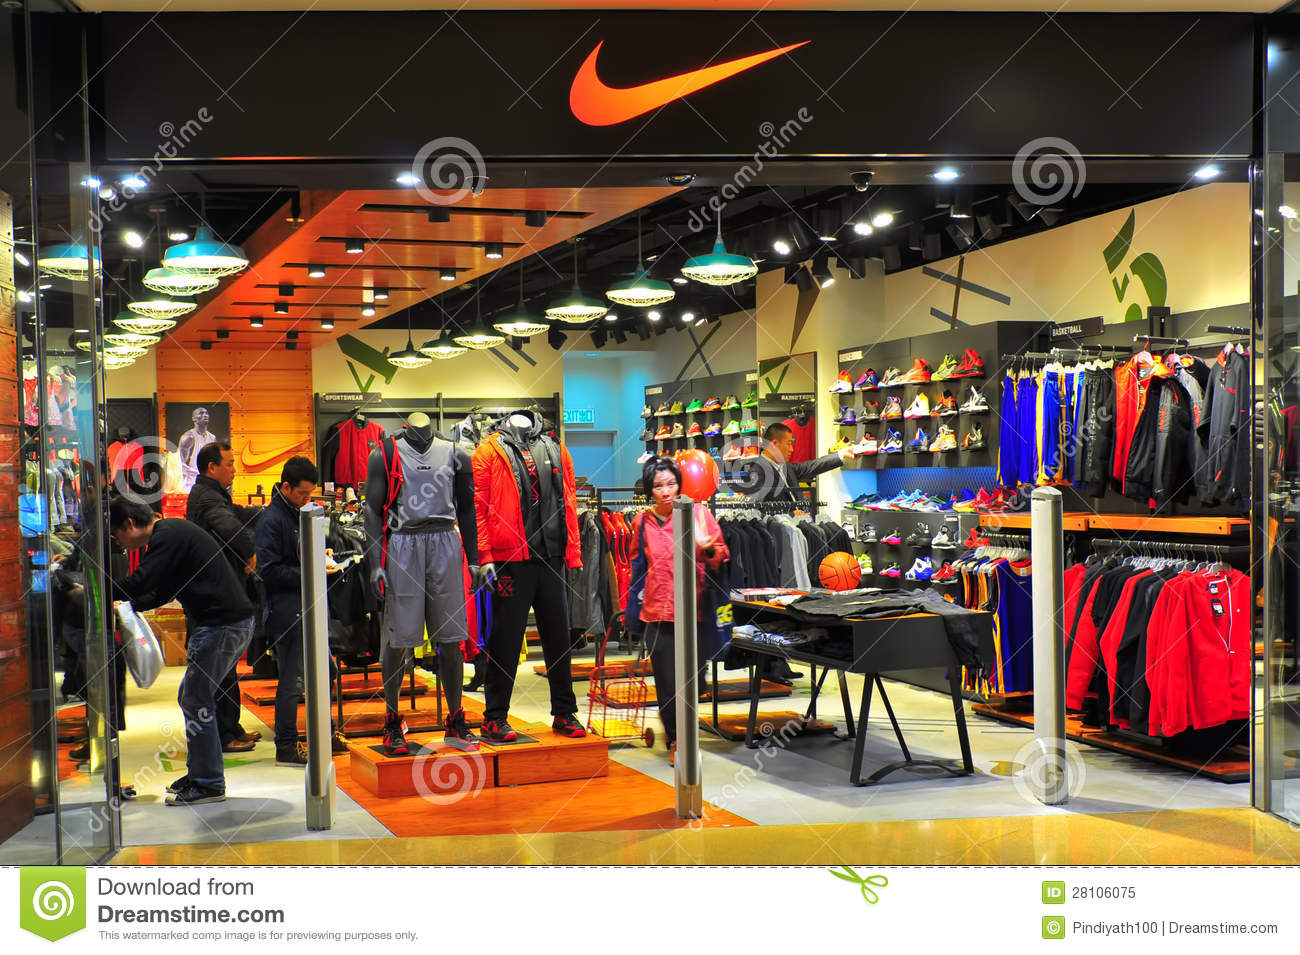 a3919d844f241 Nike Store Or Outlet Hong Kong Editorial Image - Image of jackets ...